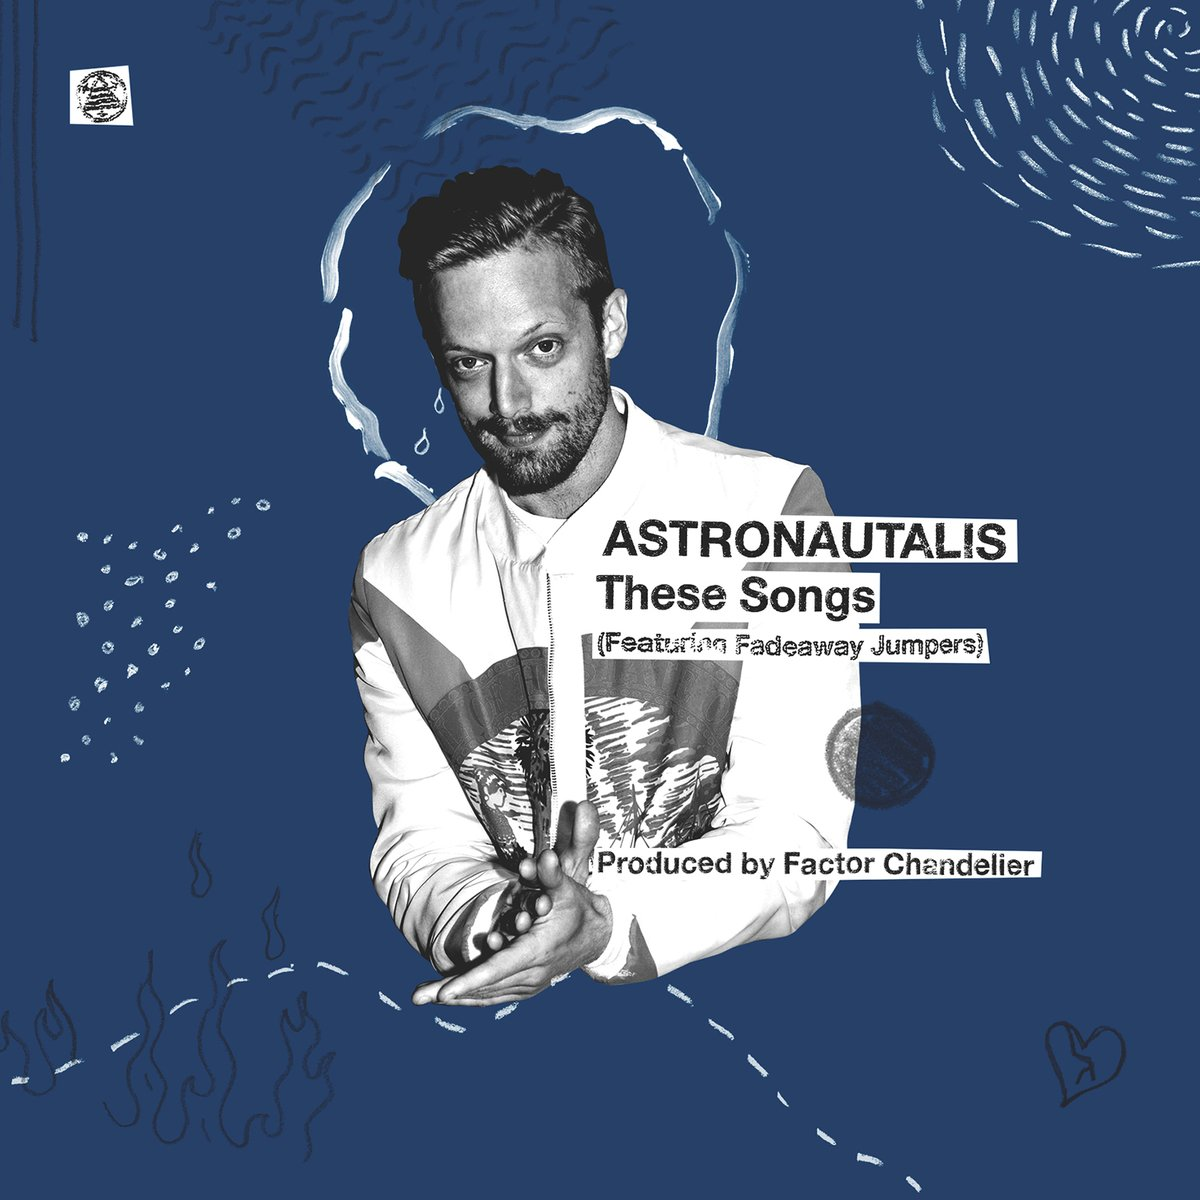 Astronautalis – Consequence of Sound